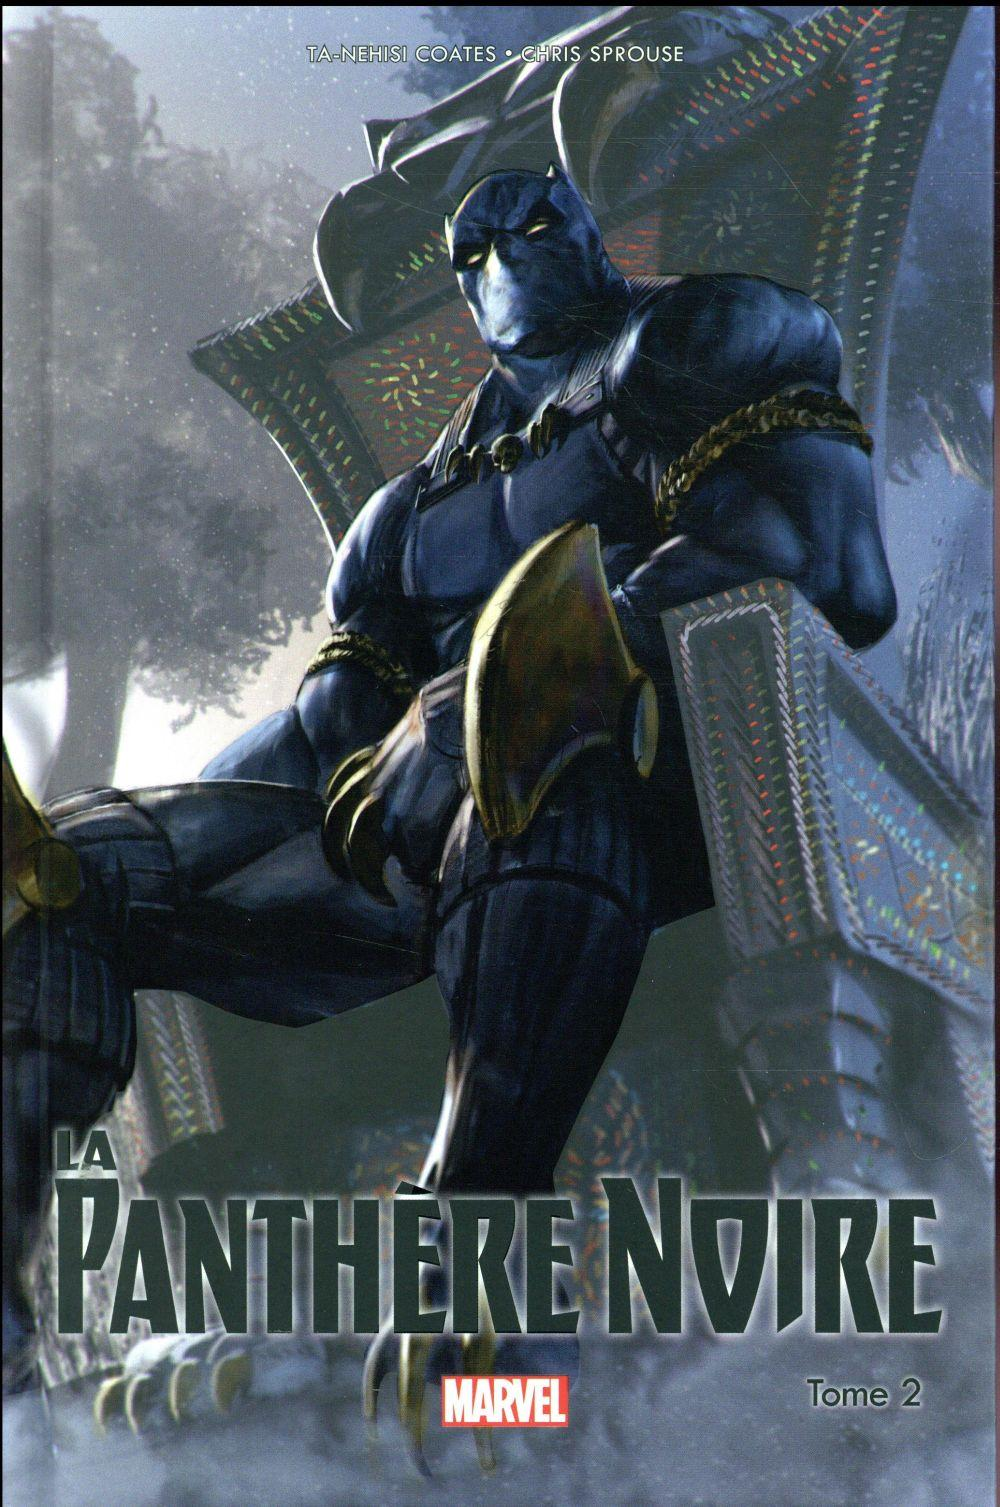 La panthere noire all-new all-different t02  - Ta-Nehisi Coates